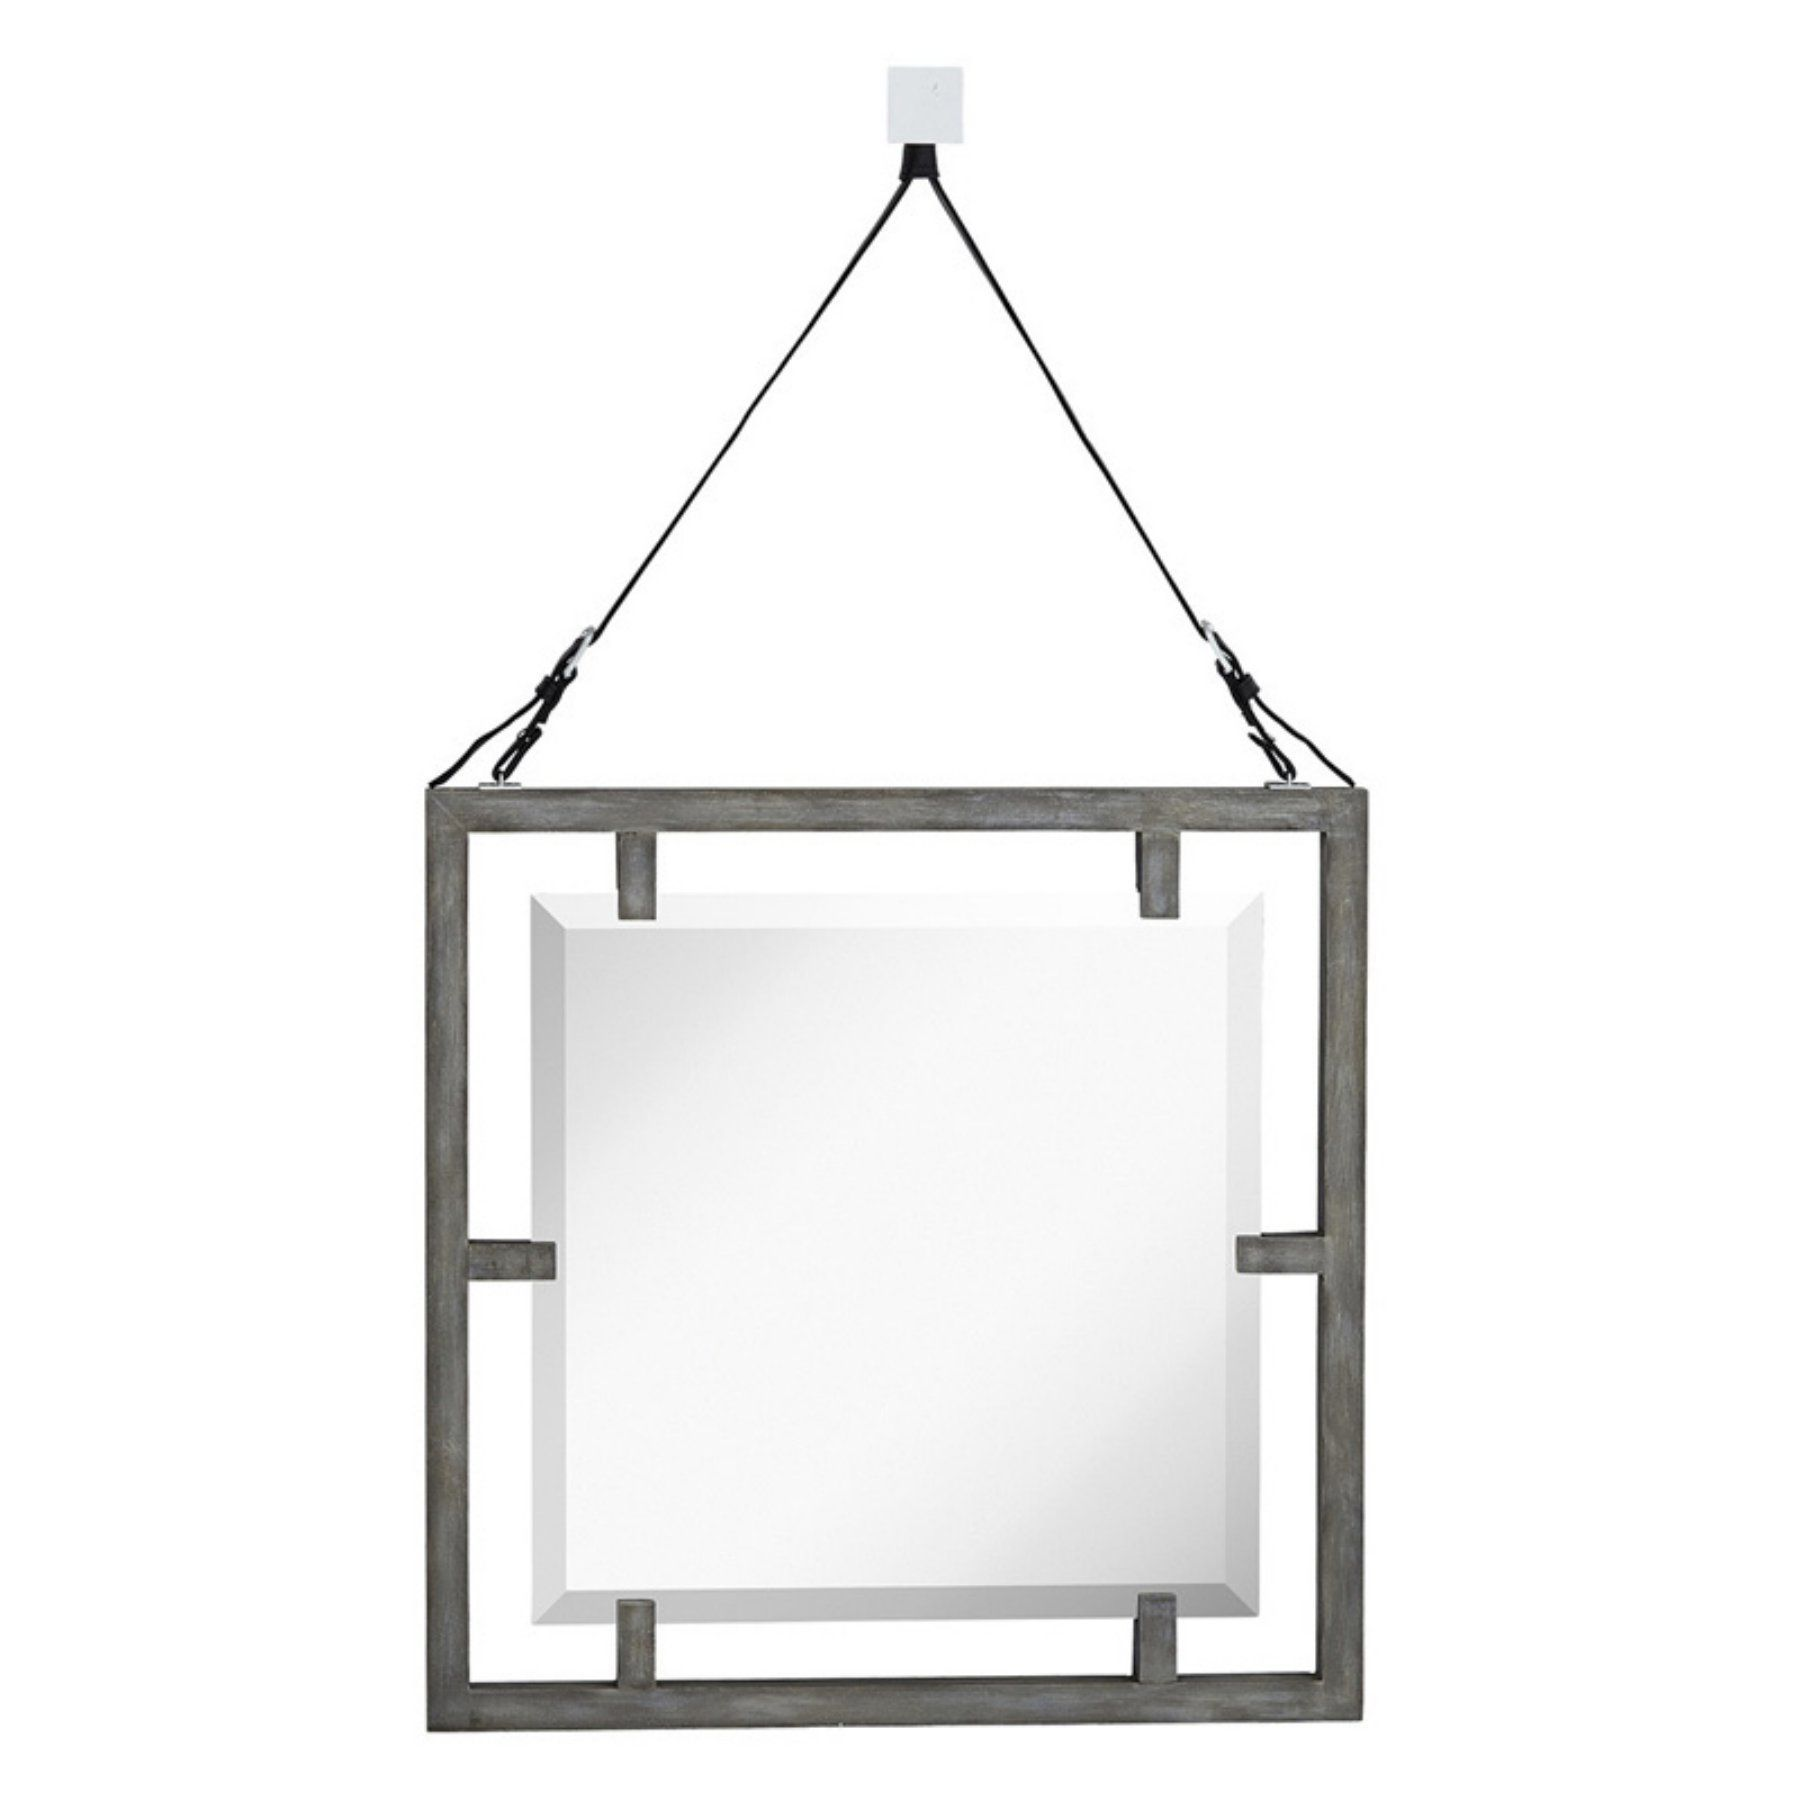 Rustic Hardwood Flooring Tips And Suggestion: Majestic Mirror Rustic Wood Framed Beveled Glass Hanging